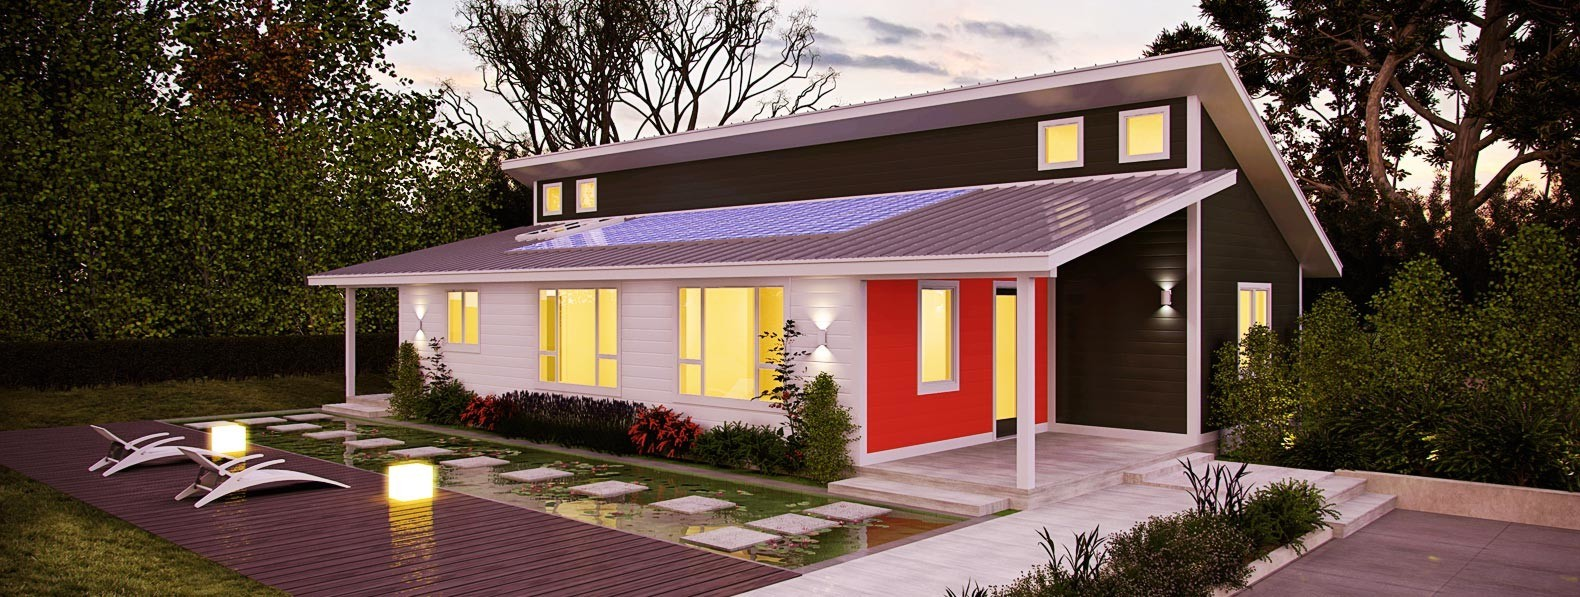 Deltec homes ridgeline netzero home 1580 597 global for Net zero energy home plans